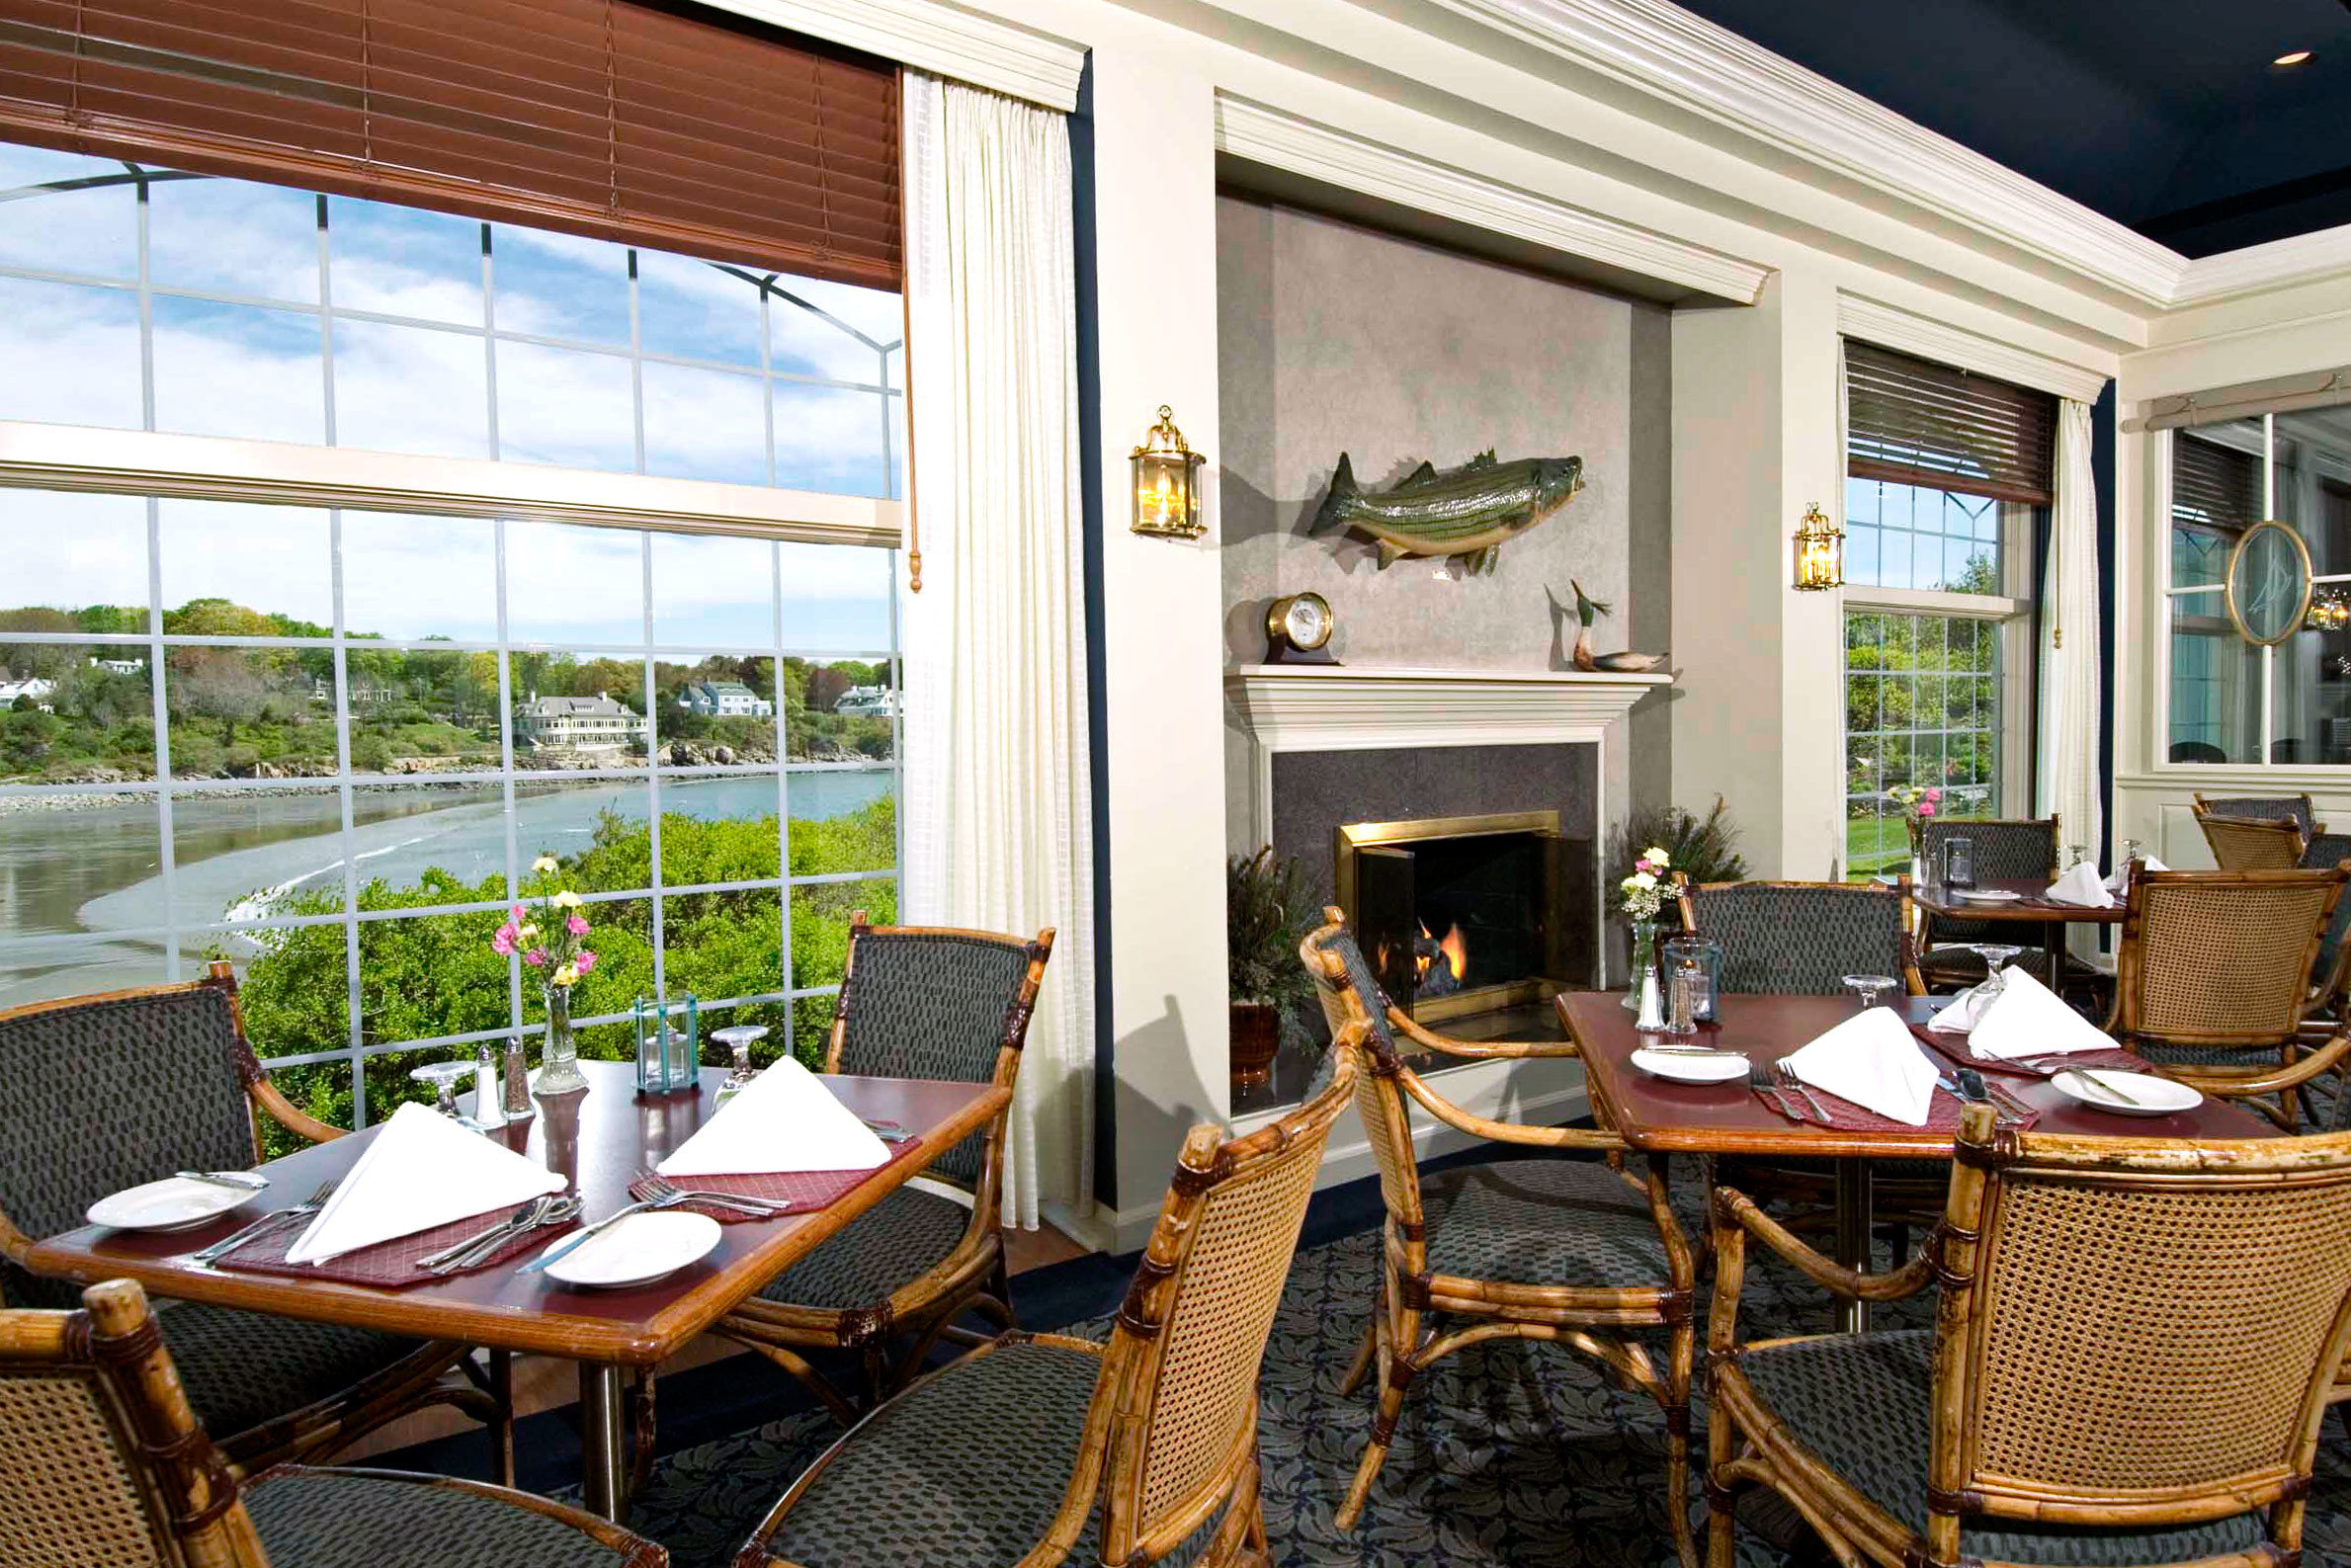 Beachfront Dining Eat Inn Ocean Scenic views Waterfront chair property home porch cottage living room Villa Suite Resort outdoor structure restaurant